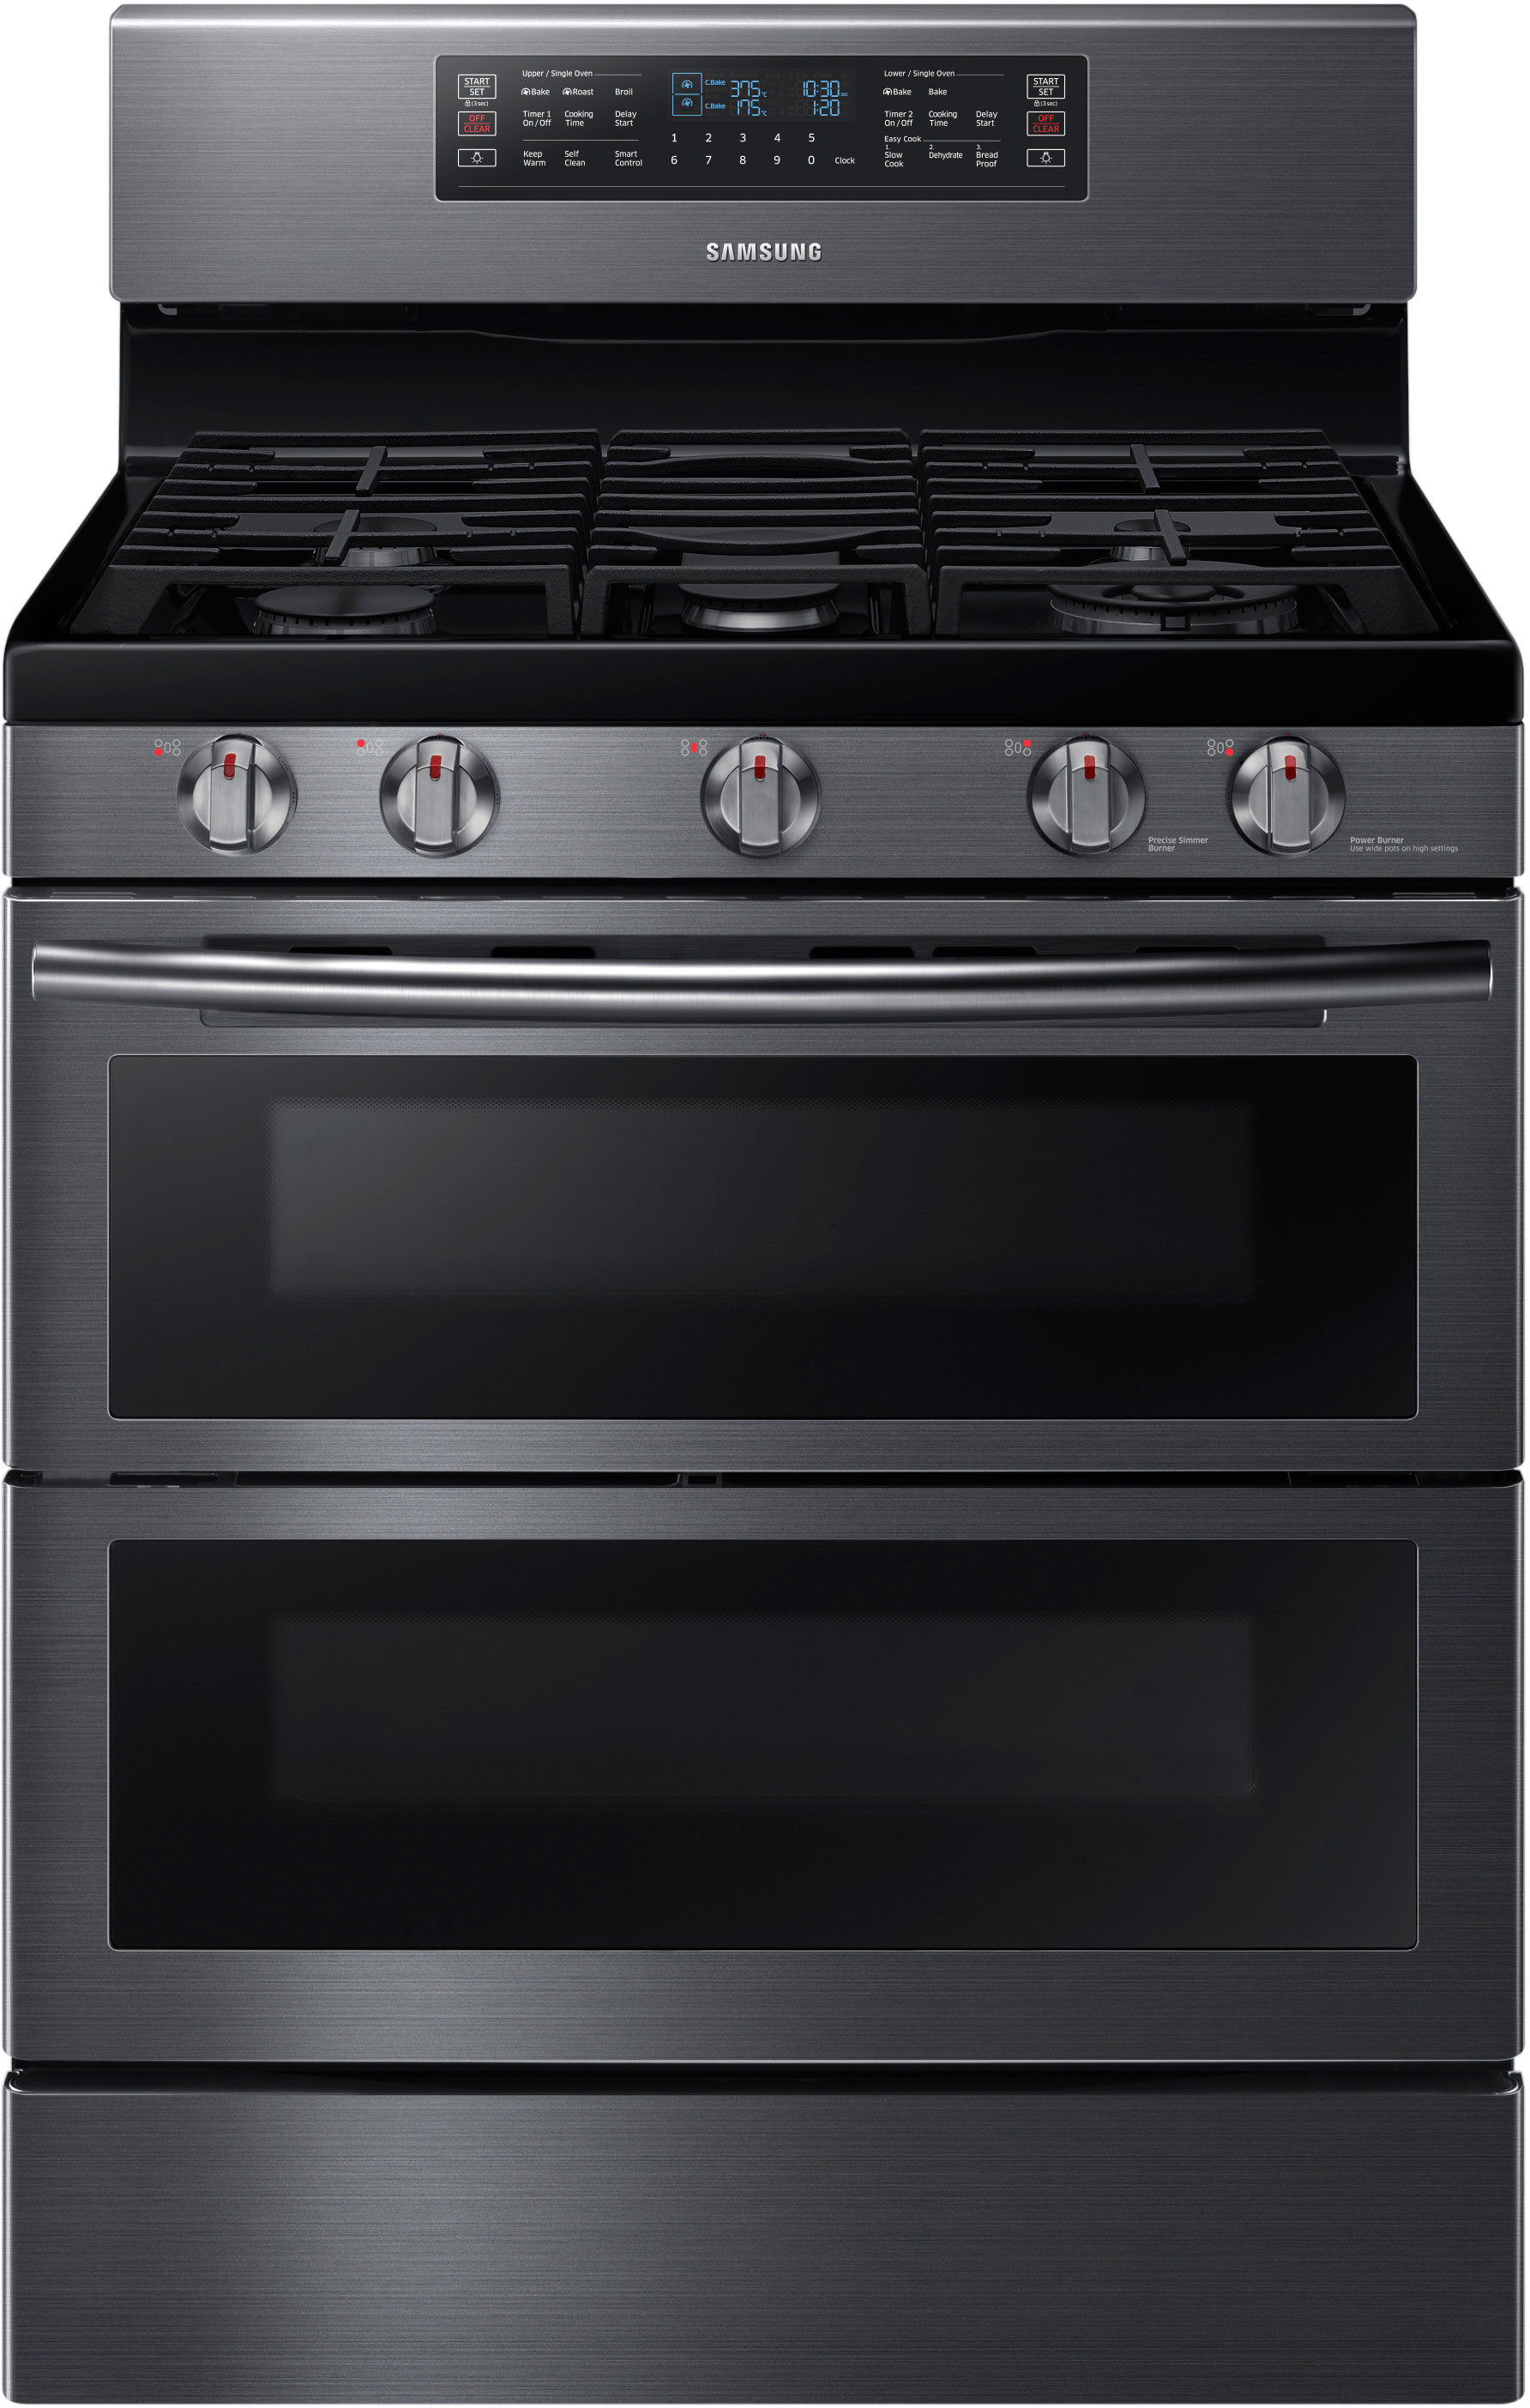 Samsung Gas Ranges